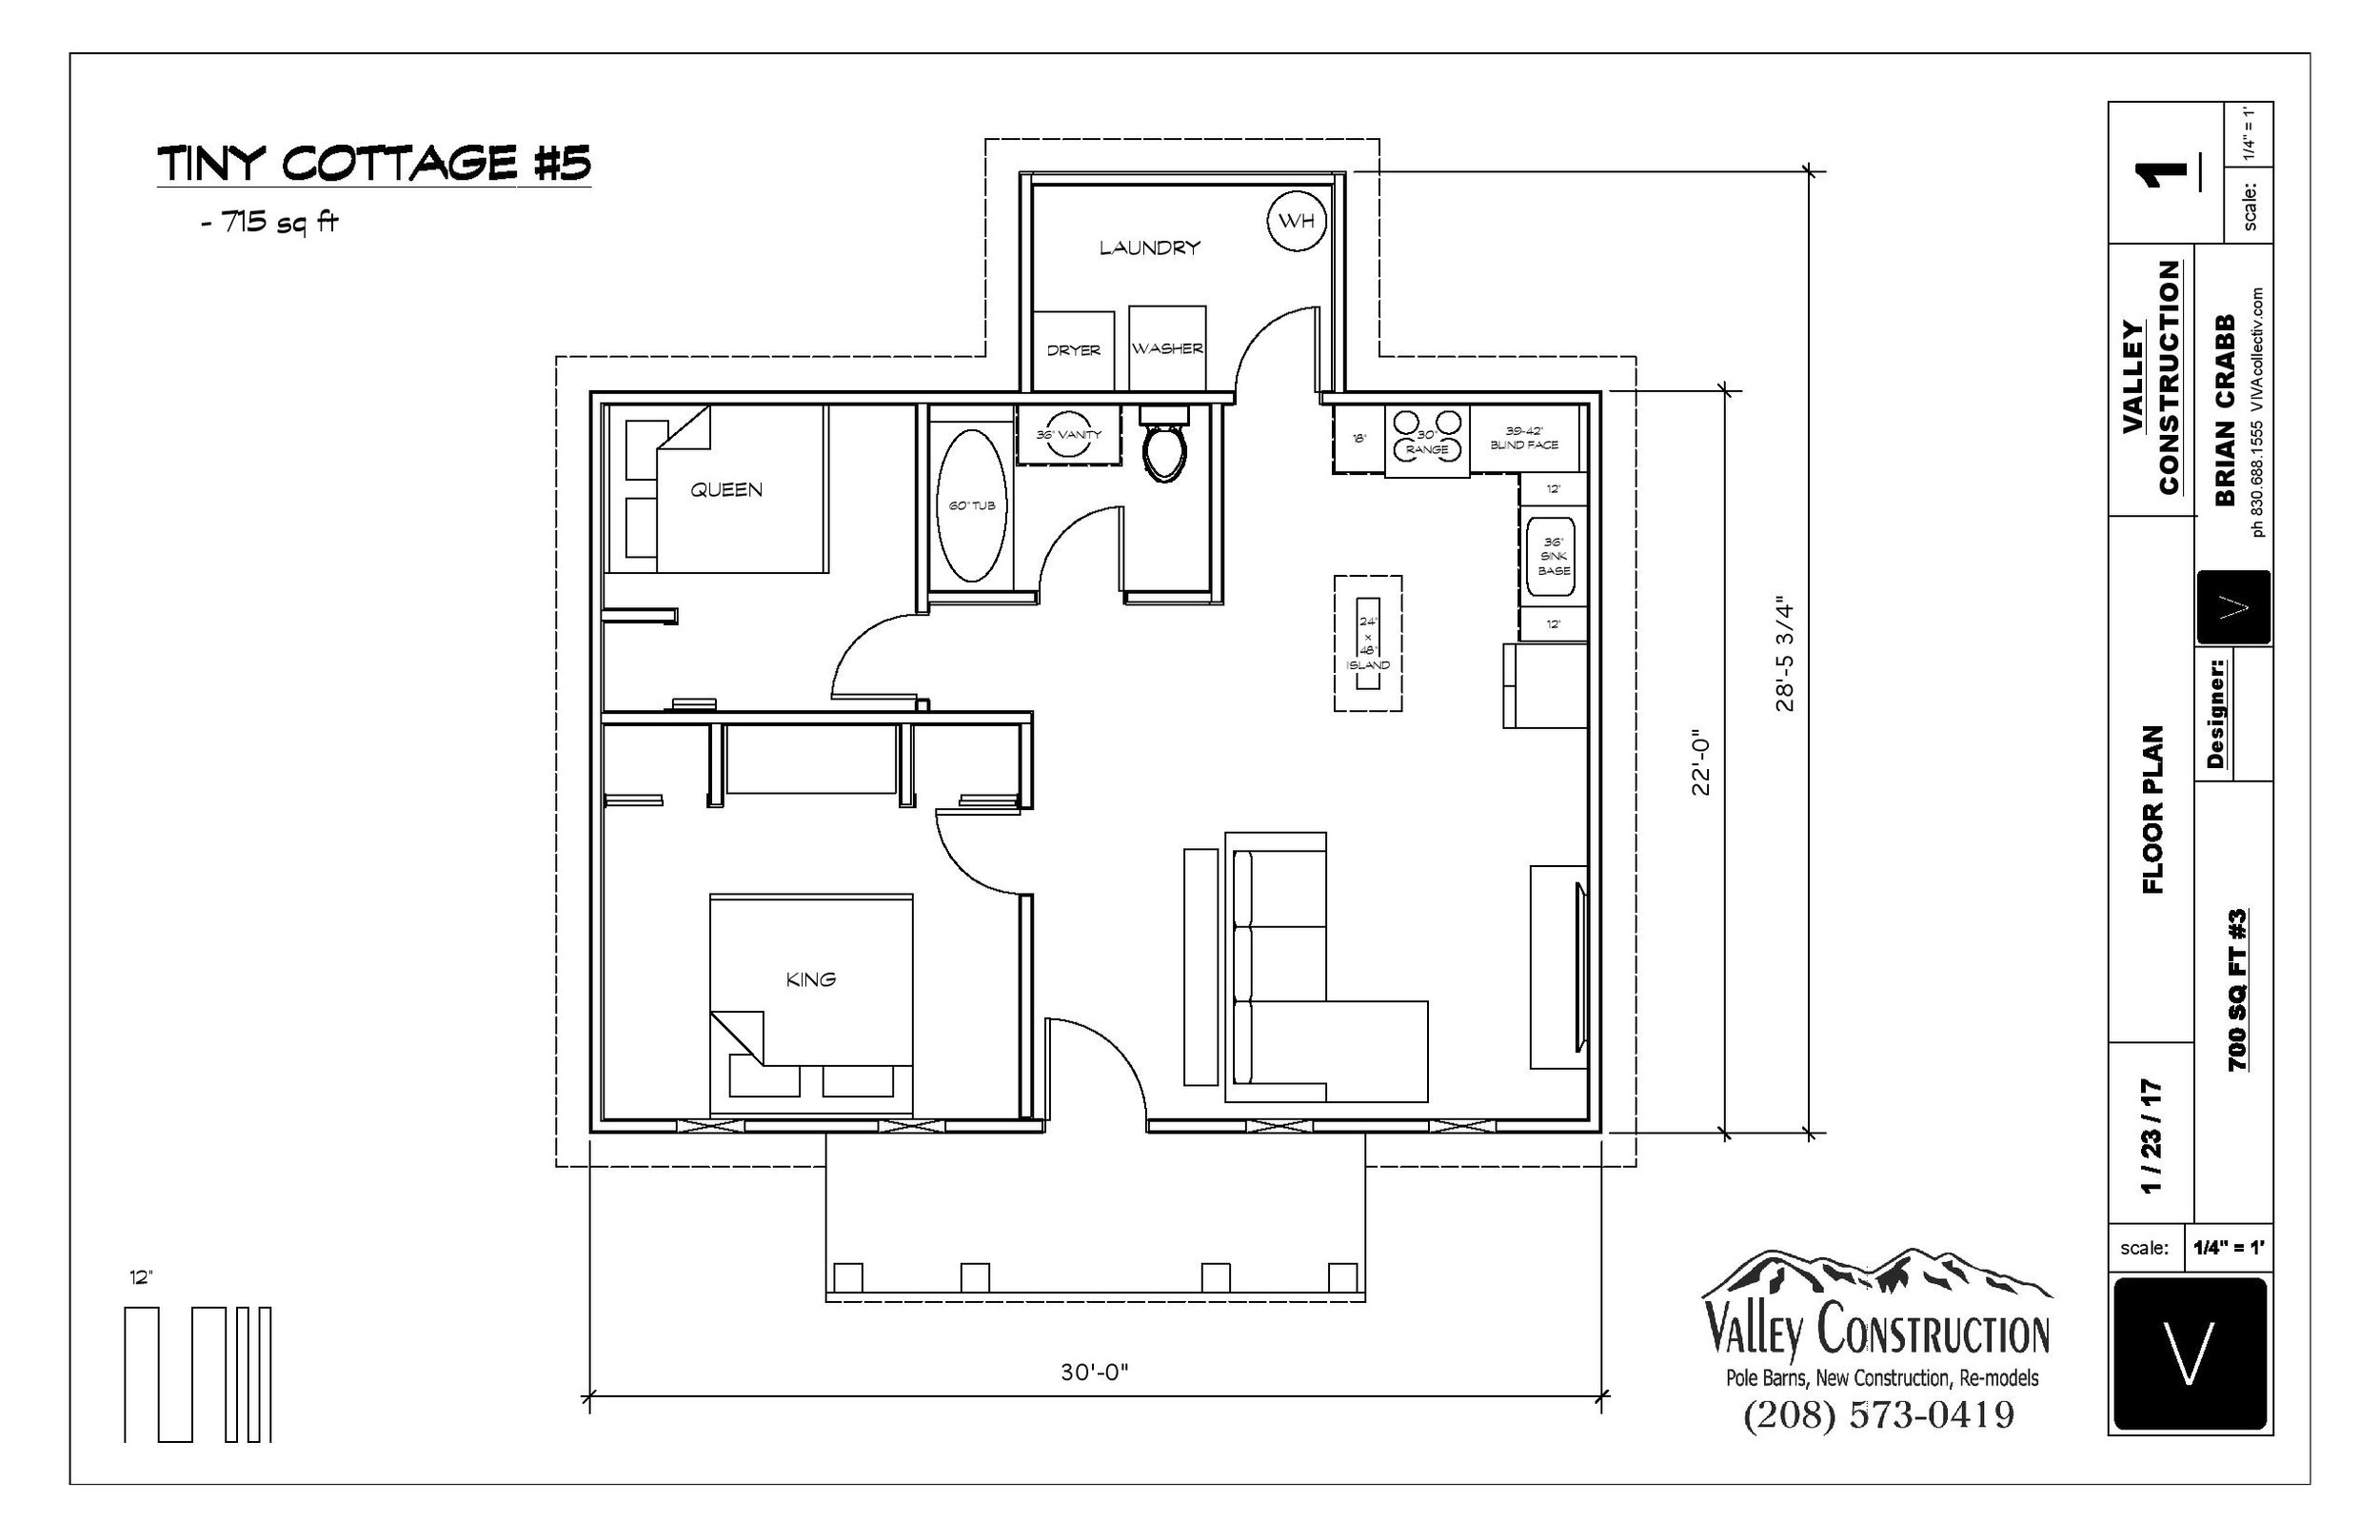 700 SQ FT #3 PACKET (1)-page-002.jpg